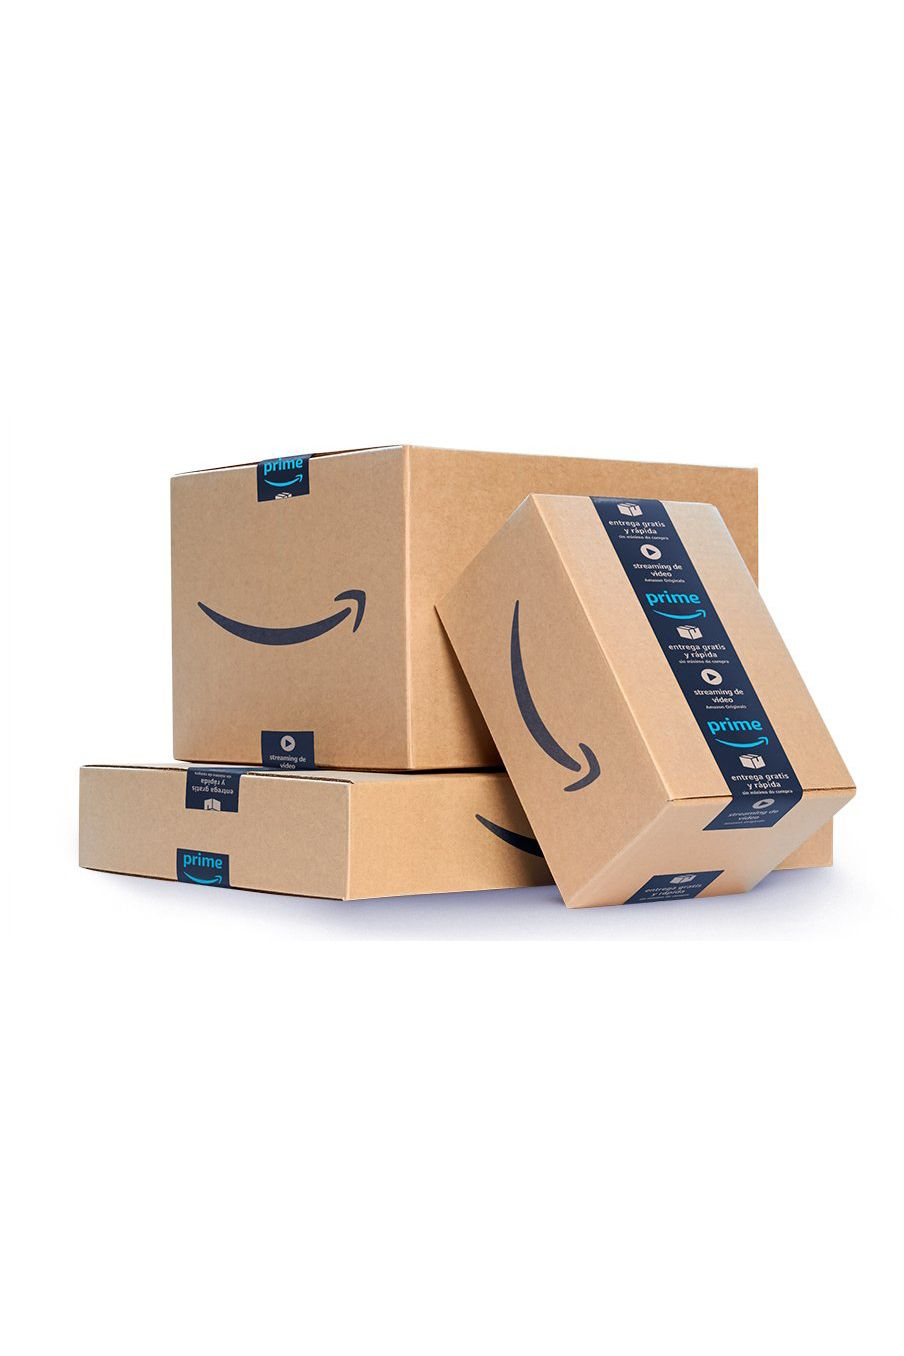 amazonprime - Best Birthday Gifts for Mom  sc 1 st  Good Housekeeping & 20 Good Birthday Gifts for Mom - Best Gift Ideas for Motheru0027s ...